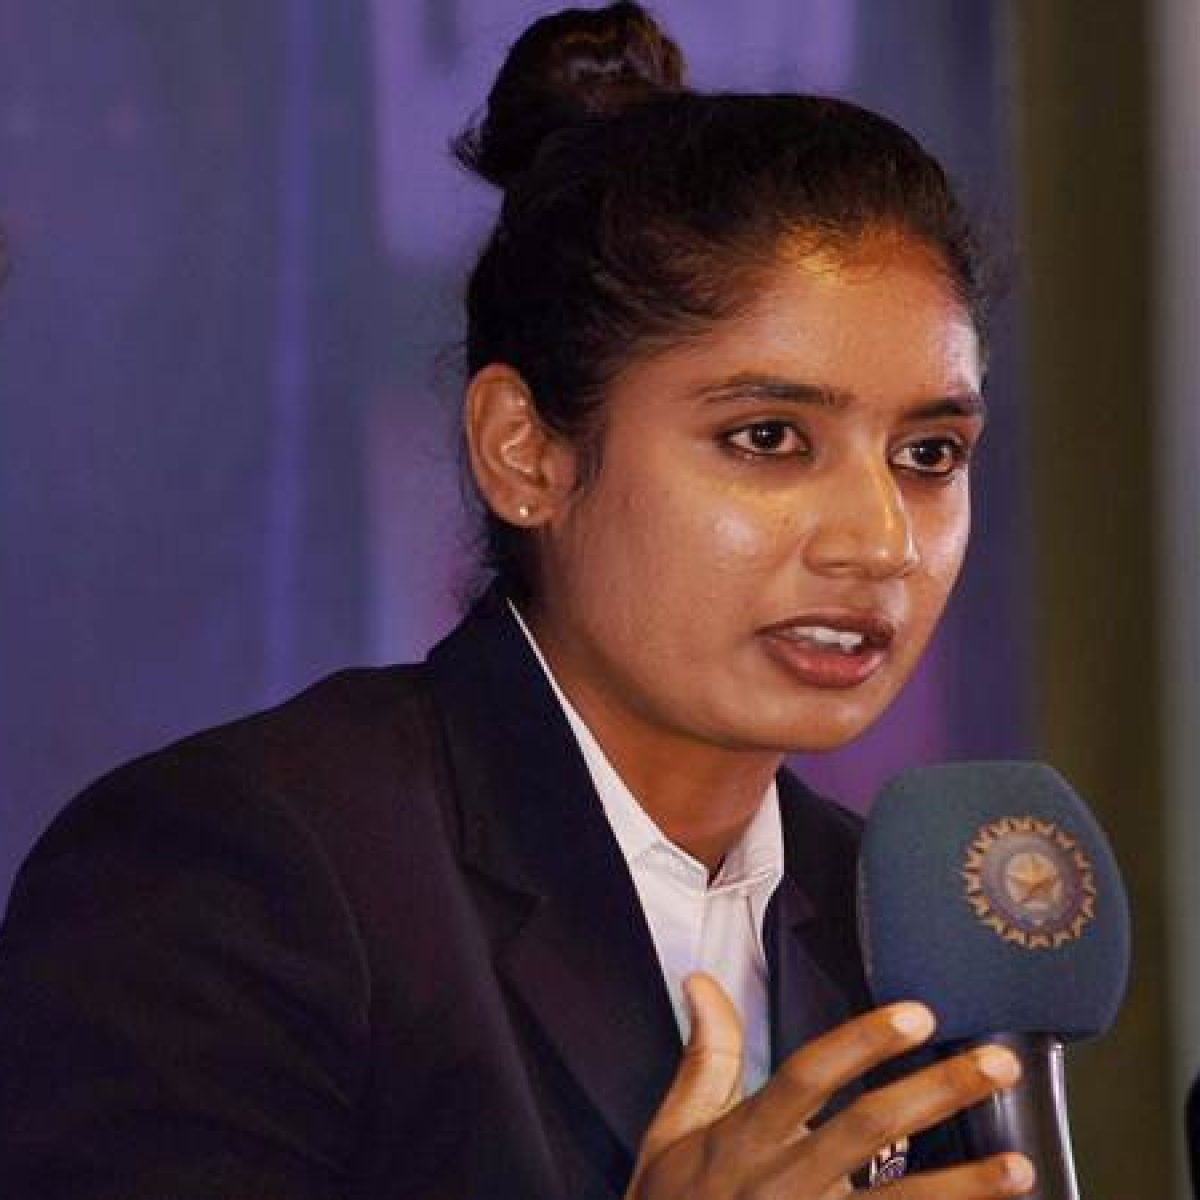 If Sachin wouldn't be there then what would have happened? Explains Mithali Raj in her post